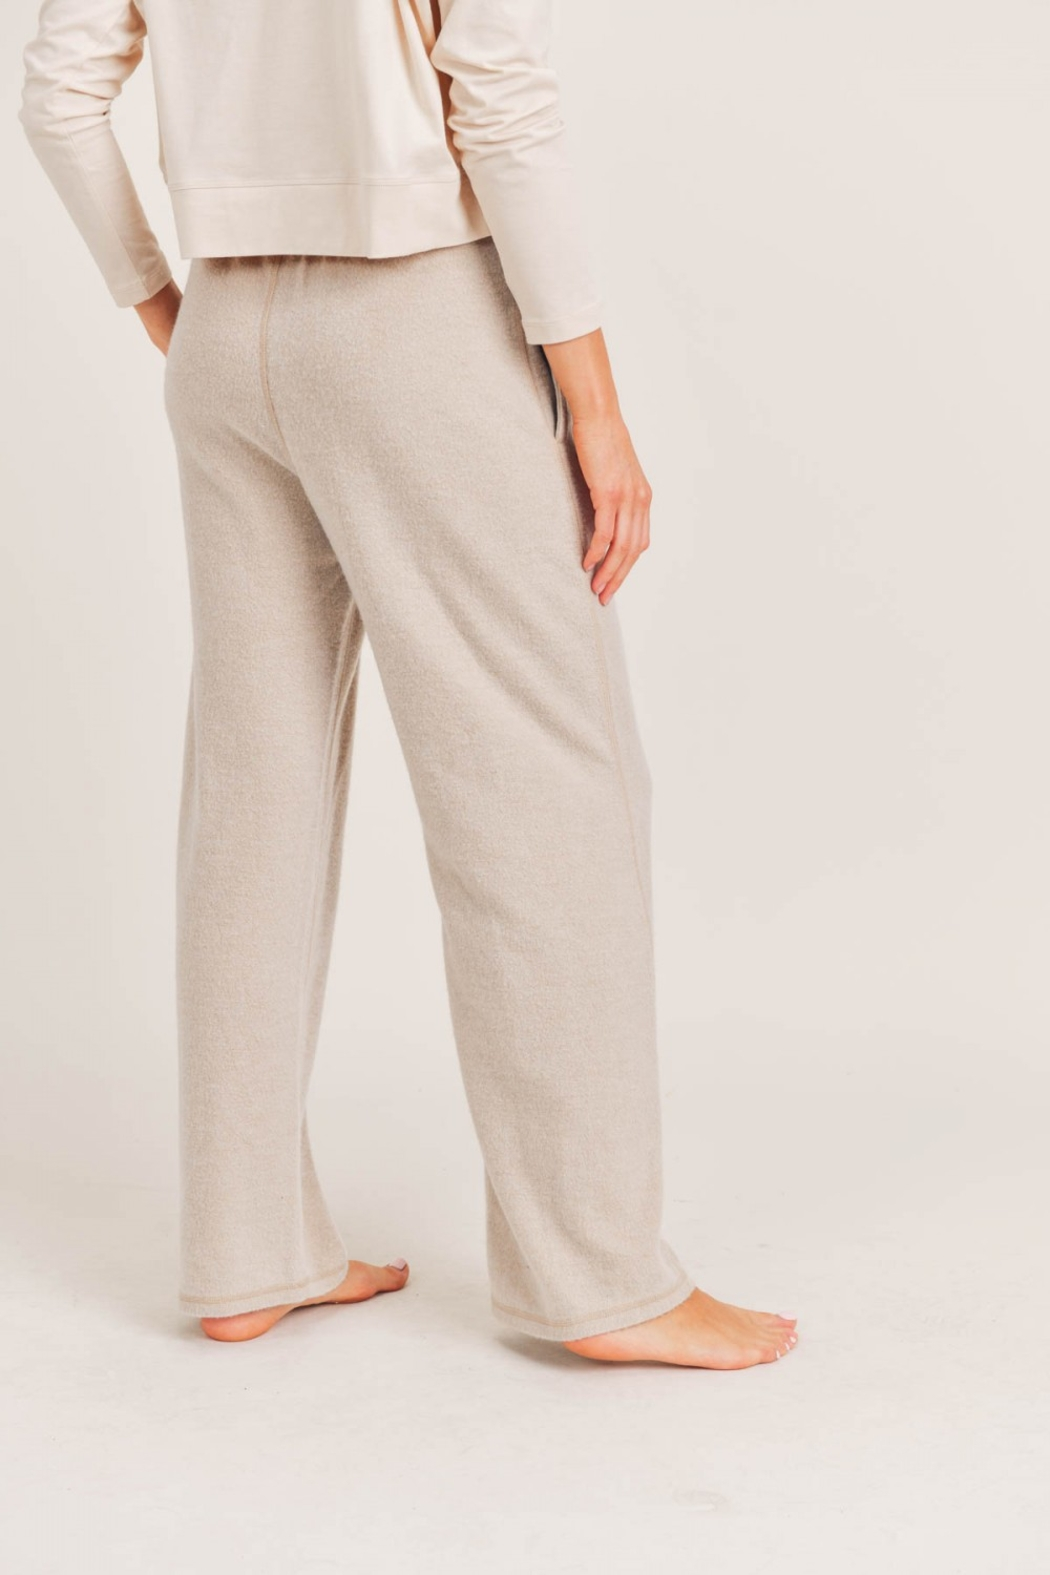 Mono B Fuzzy Mineral Washed Lounge Pants - Side Cropped Image